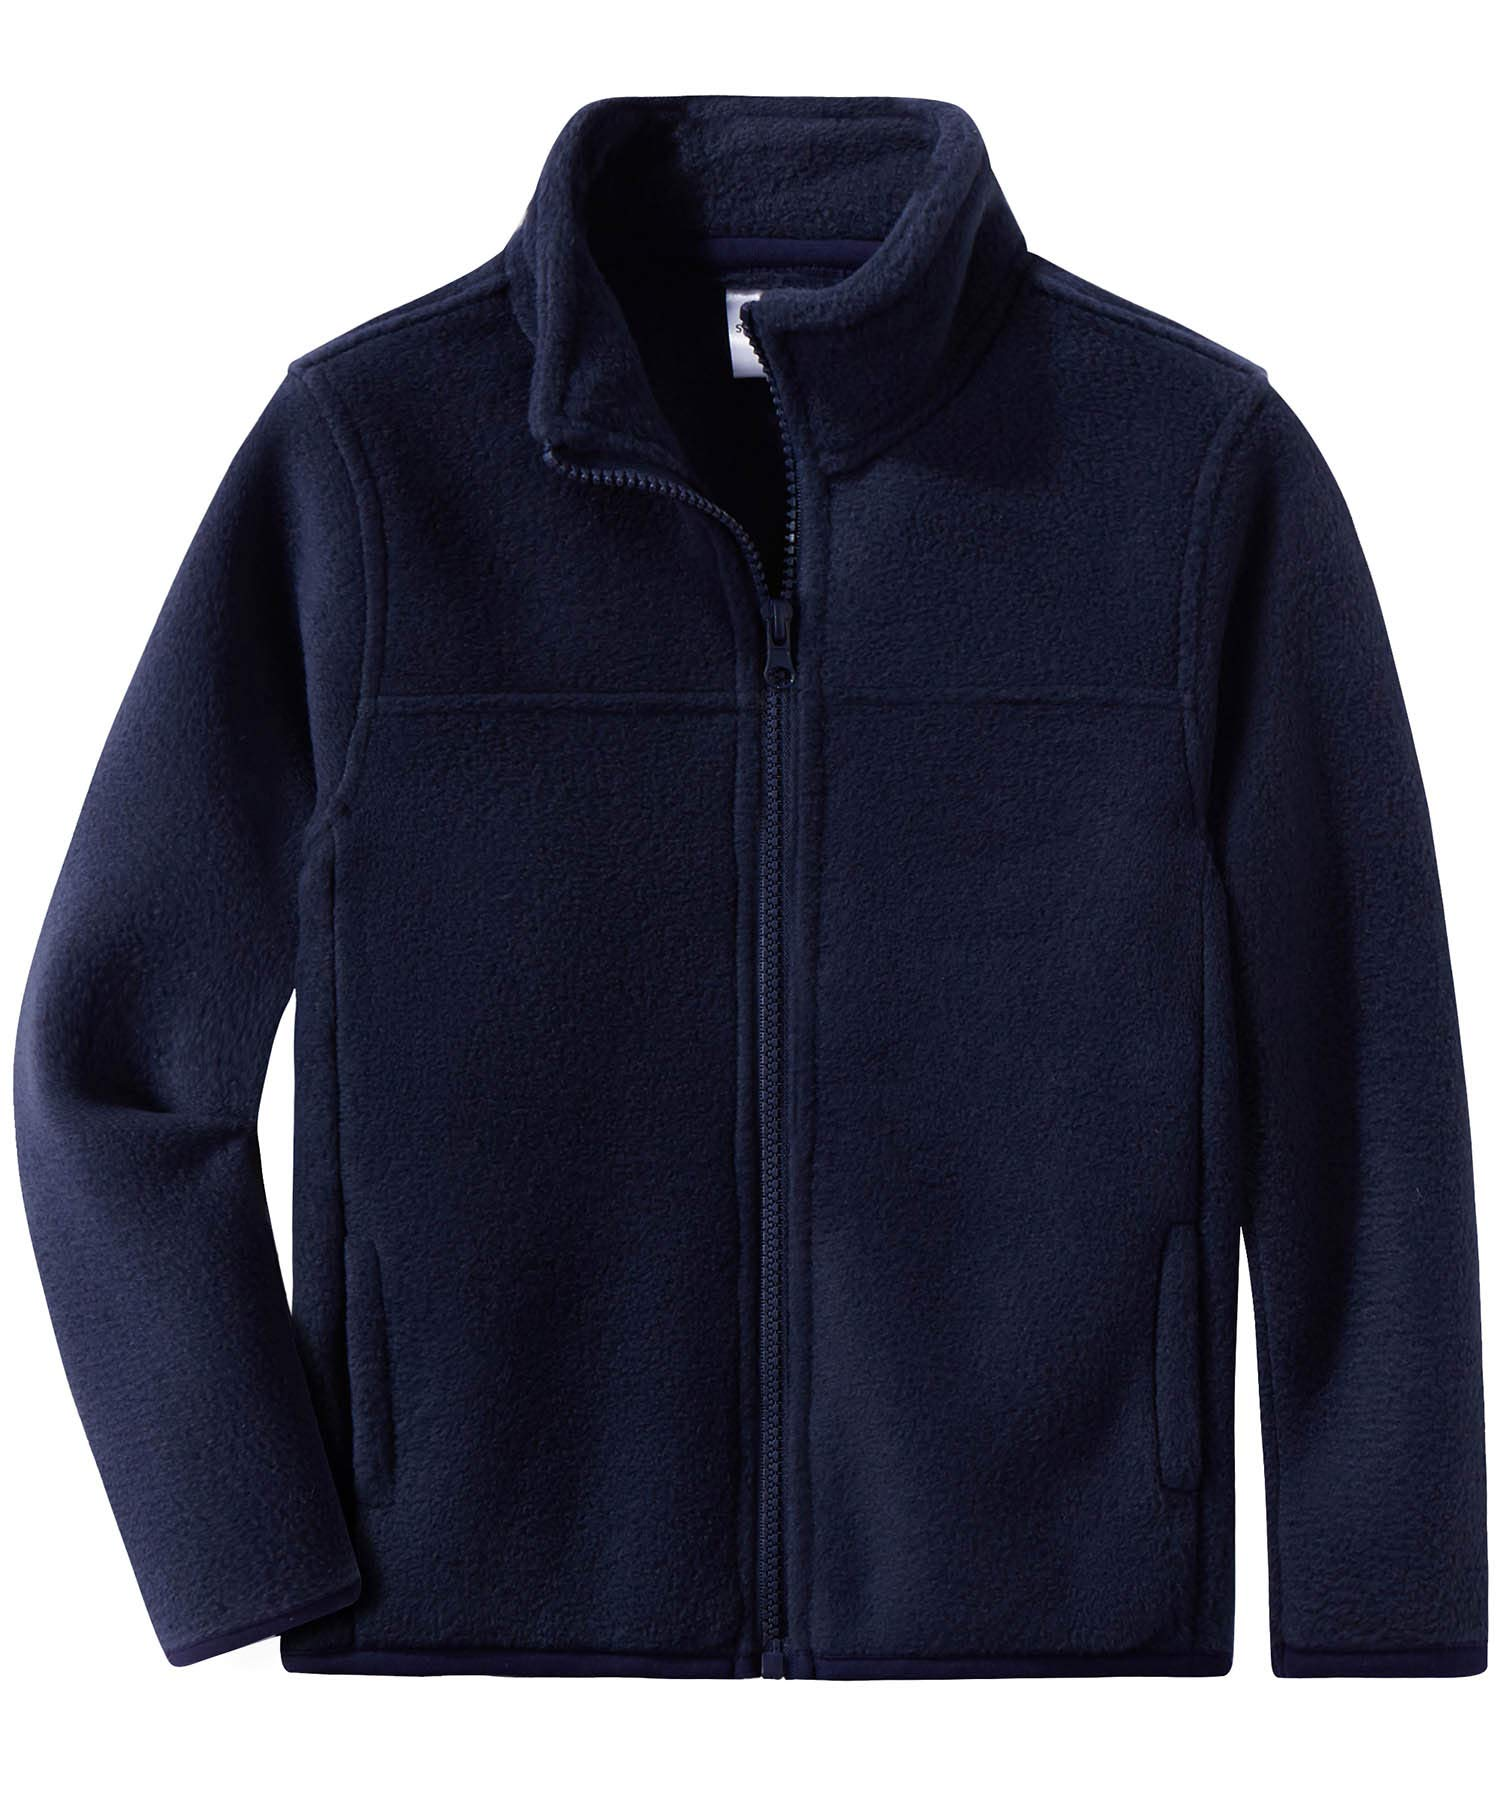 Spring&Gege Youth Solid Full-Zip Polar Fleece Jacket for Boys and Girls Size 5-6 Years Navy Blue